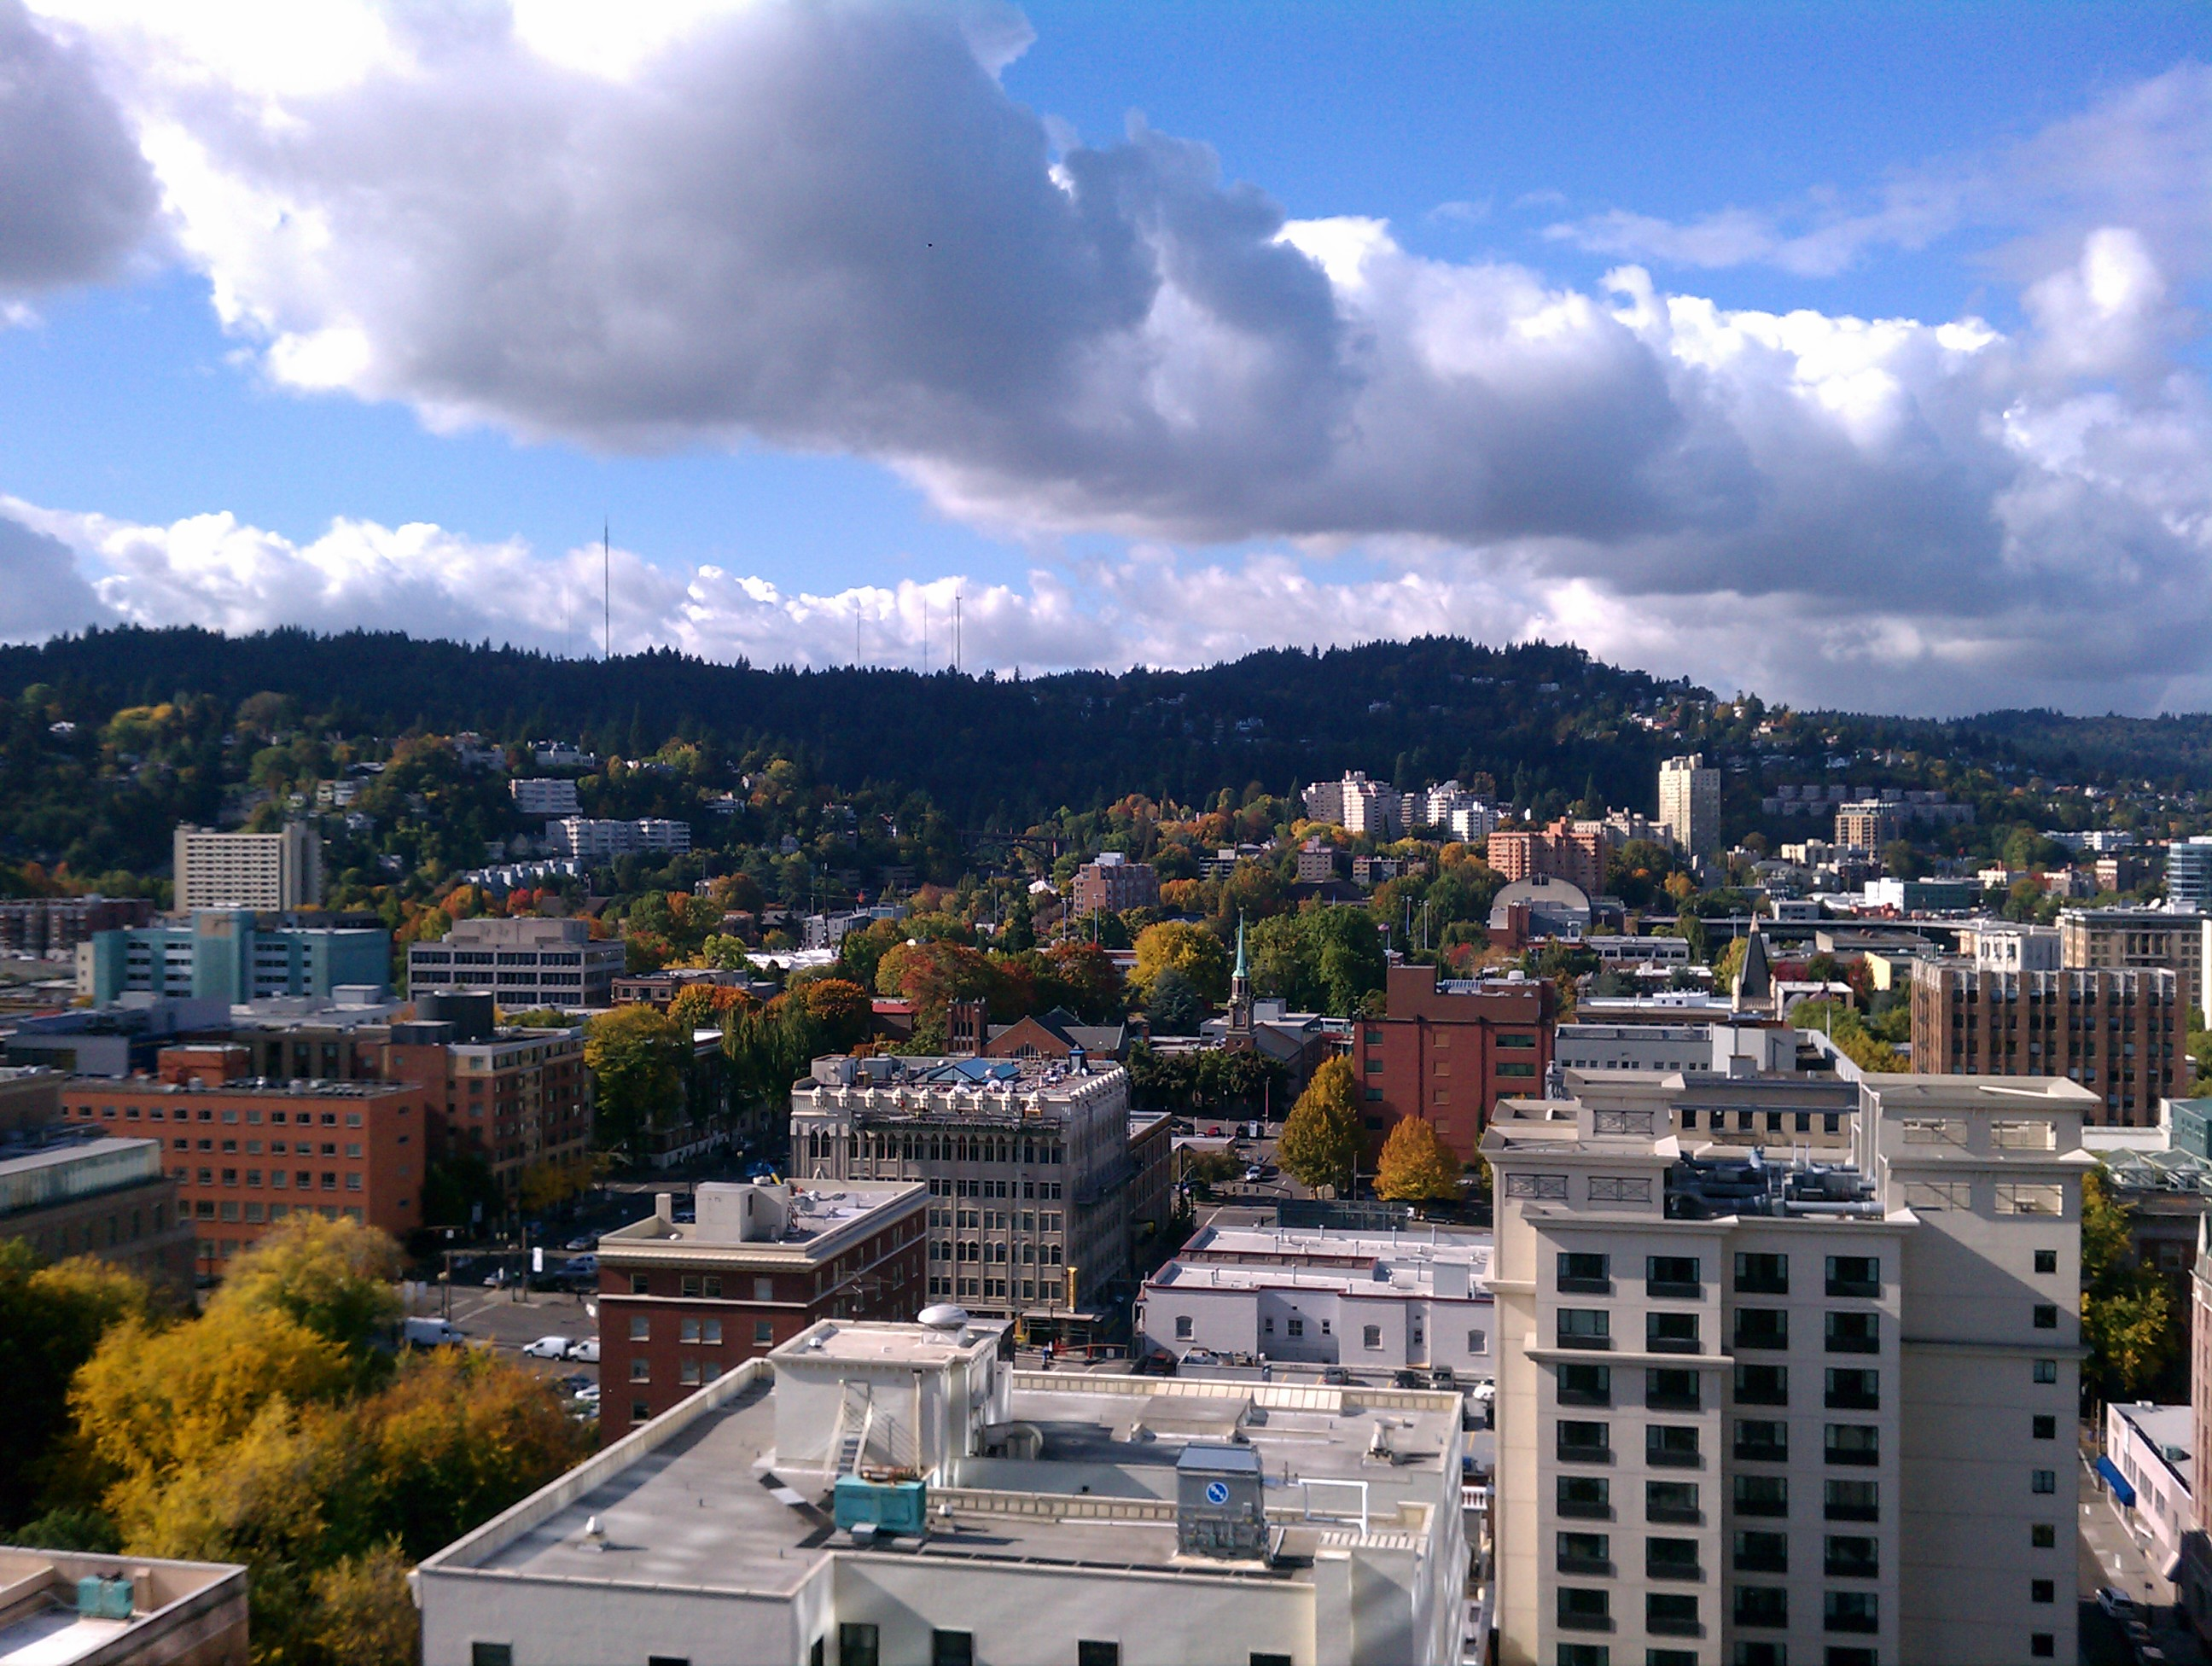 Portland from the top of the Hilton, where the Educators' Symposium was held.